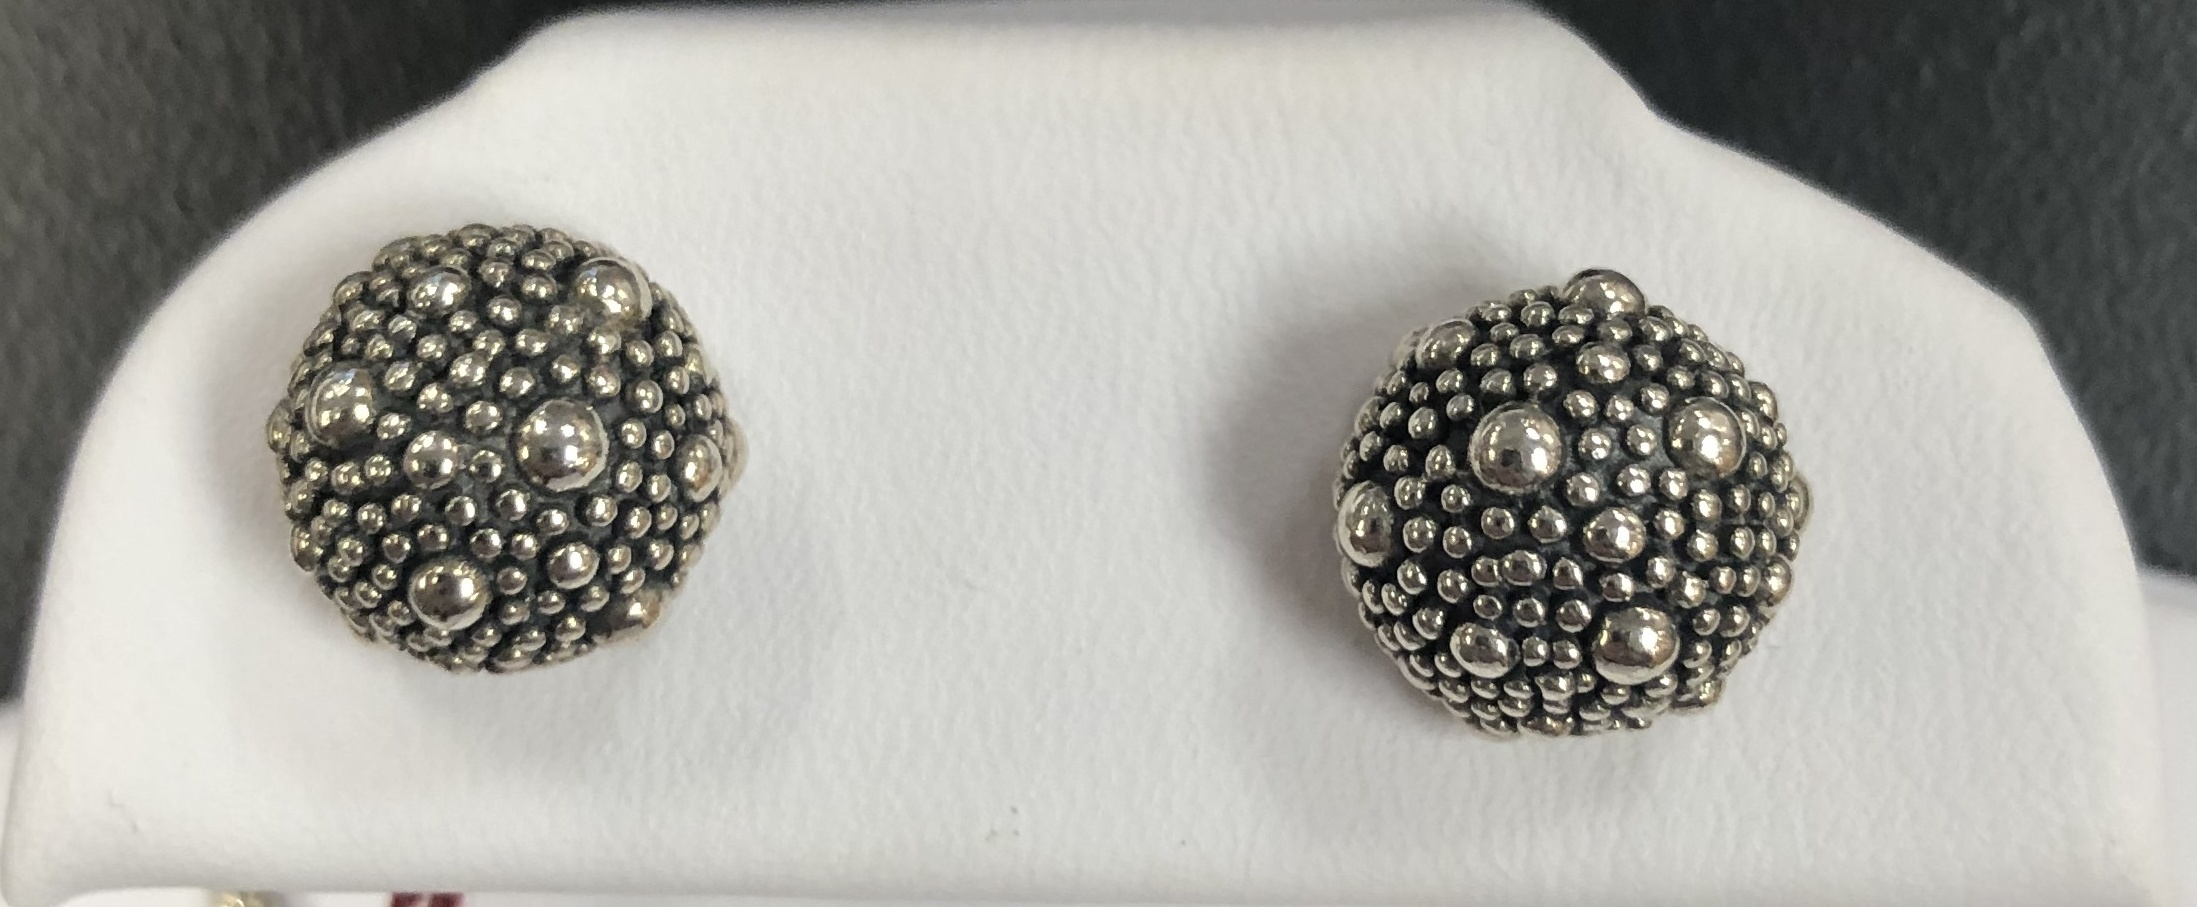 Stearling Silver 3.50DWT Woman's Set of Balls